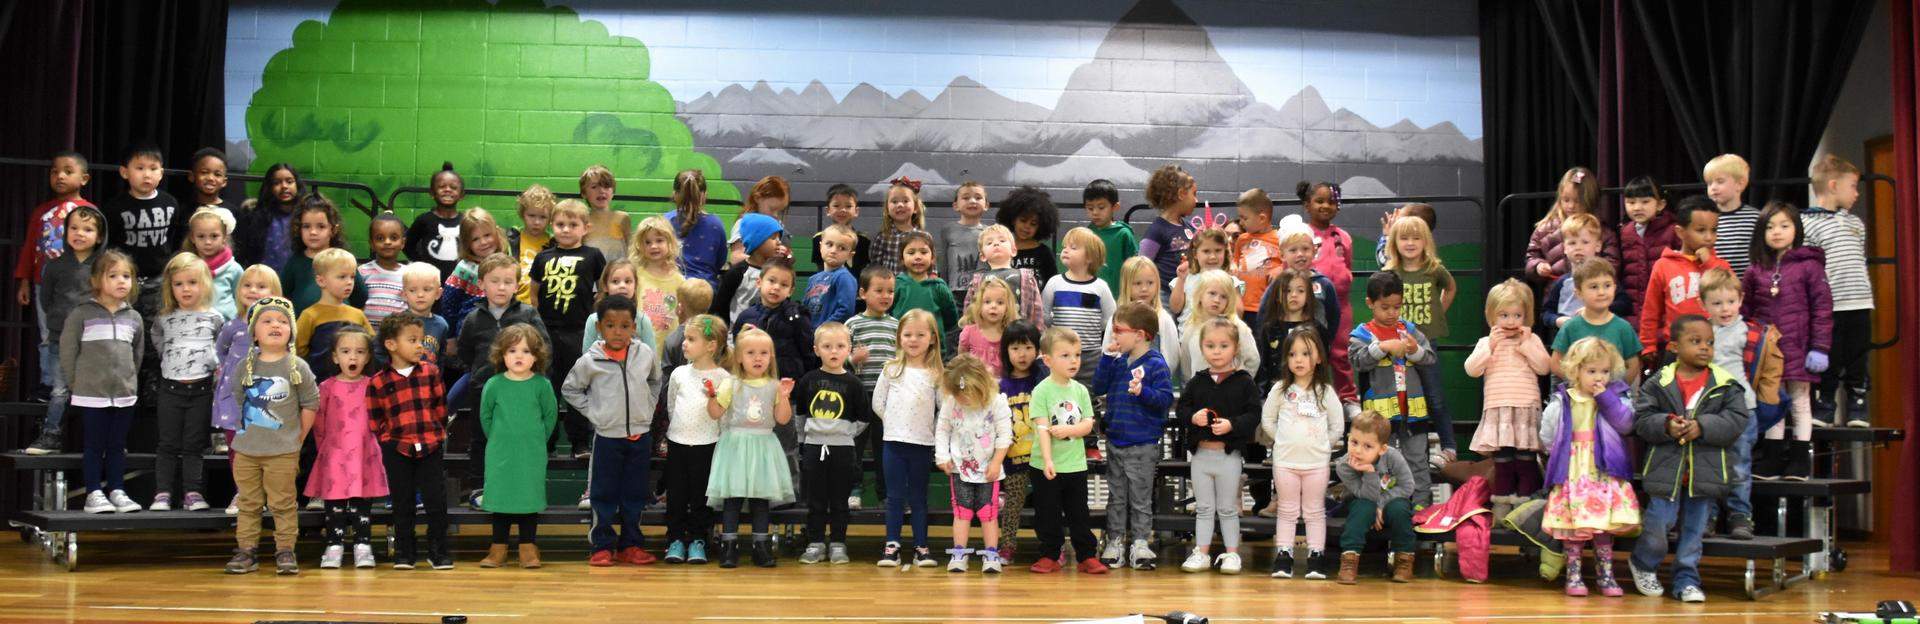 Preschoolers (nearly all of them) 2019 Christmas